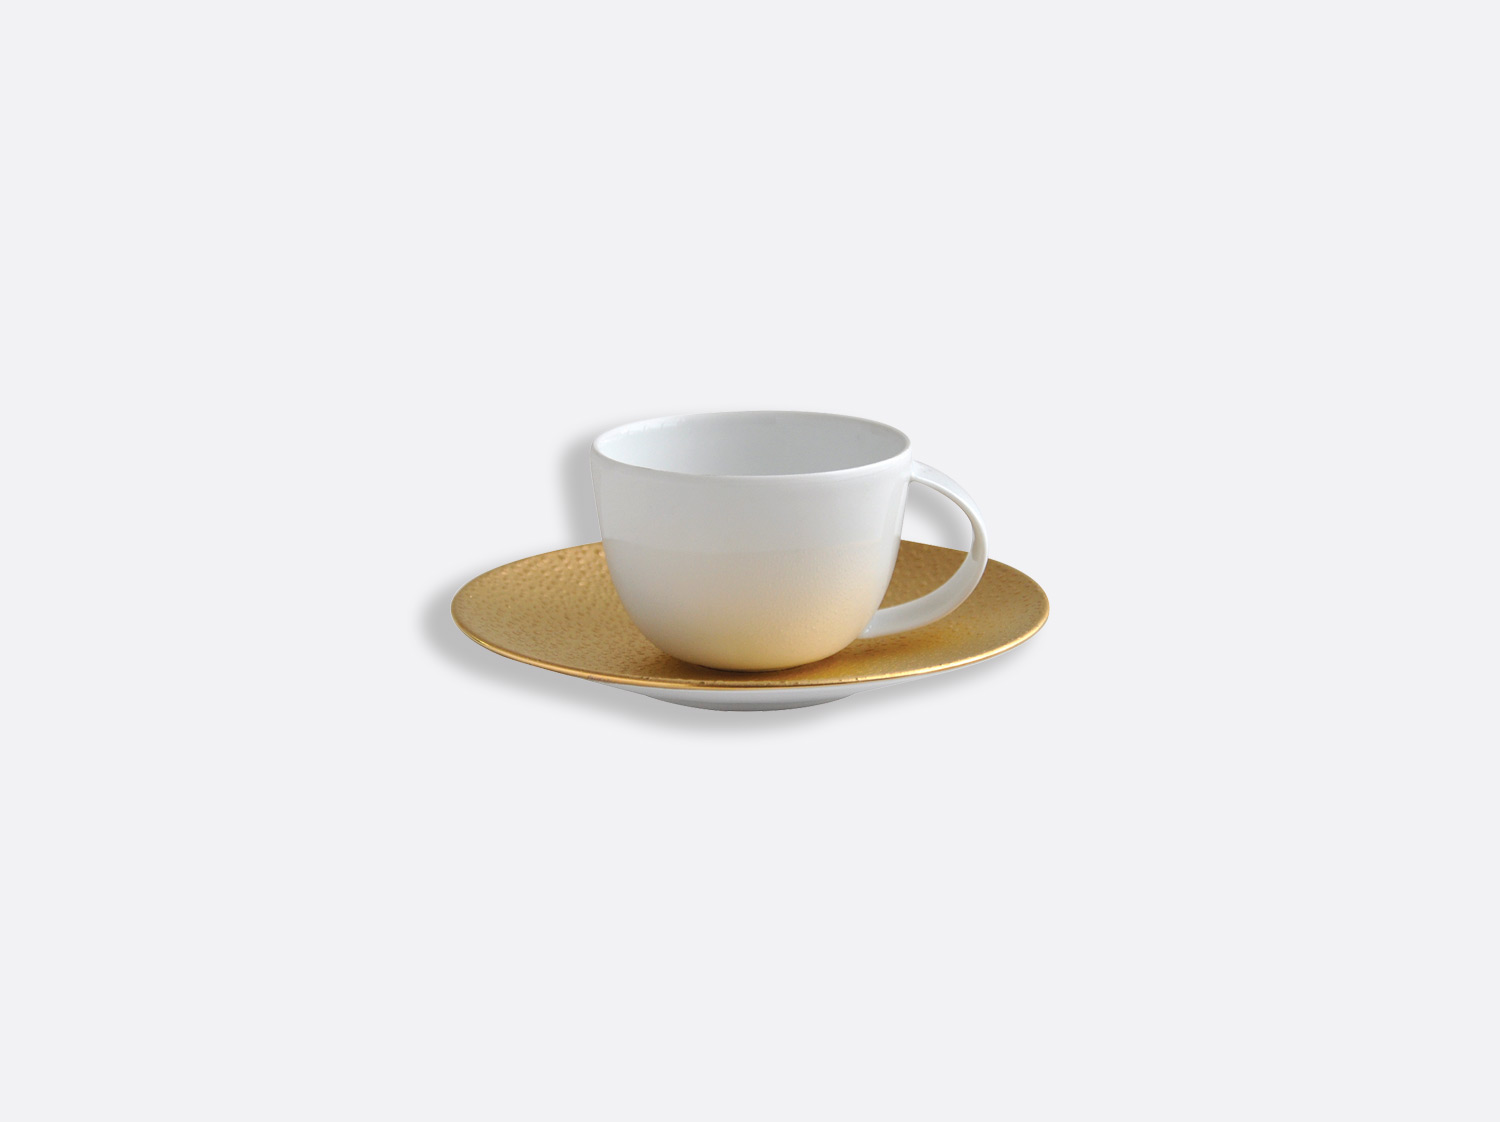 Tasse et soucoupe café 7 cl en porcelaine de la collection Gouttes d or Bernardaud